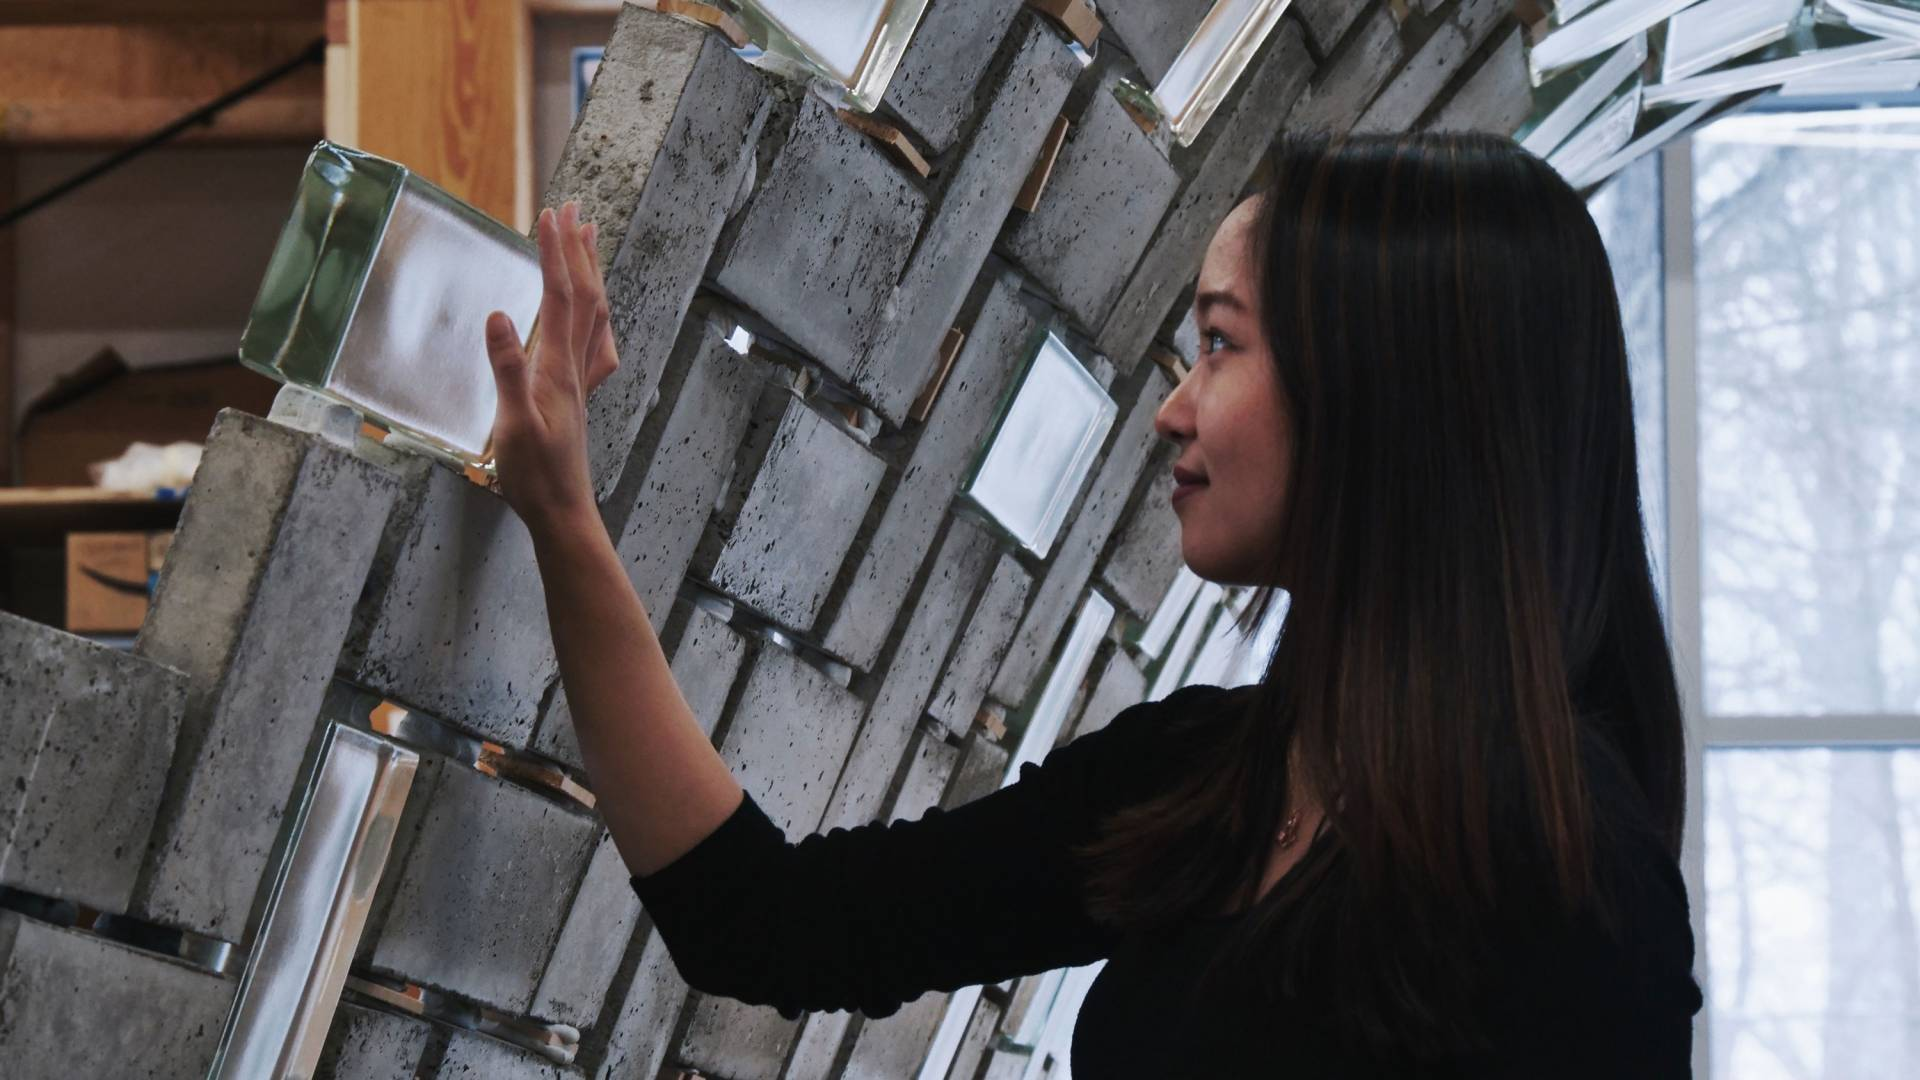 A graduate student touches a glass brick in the structure